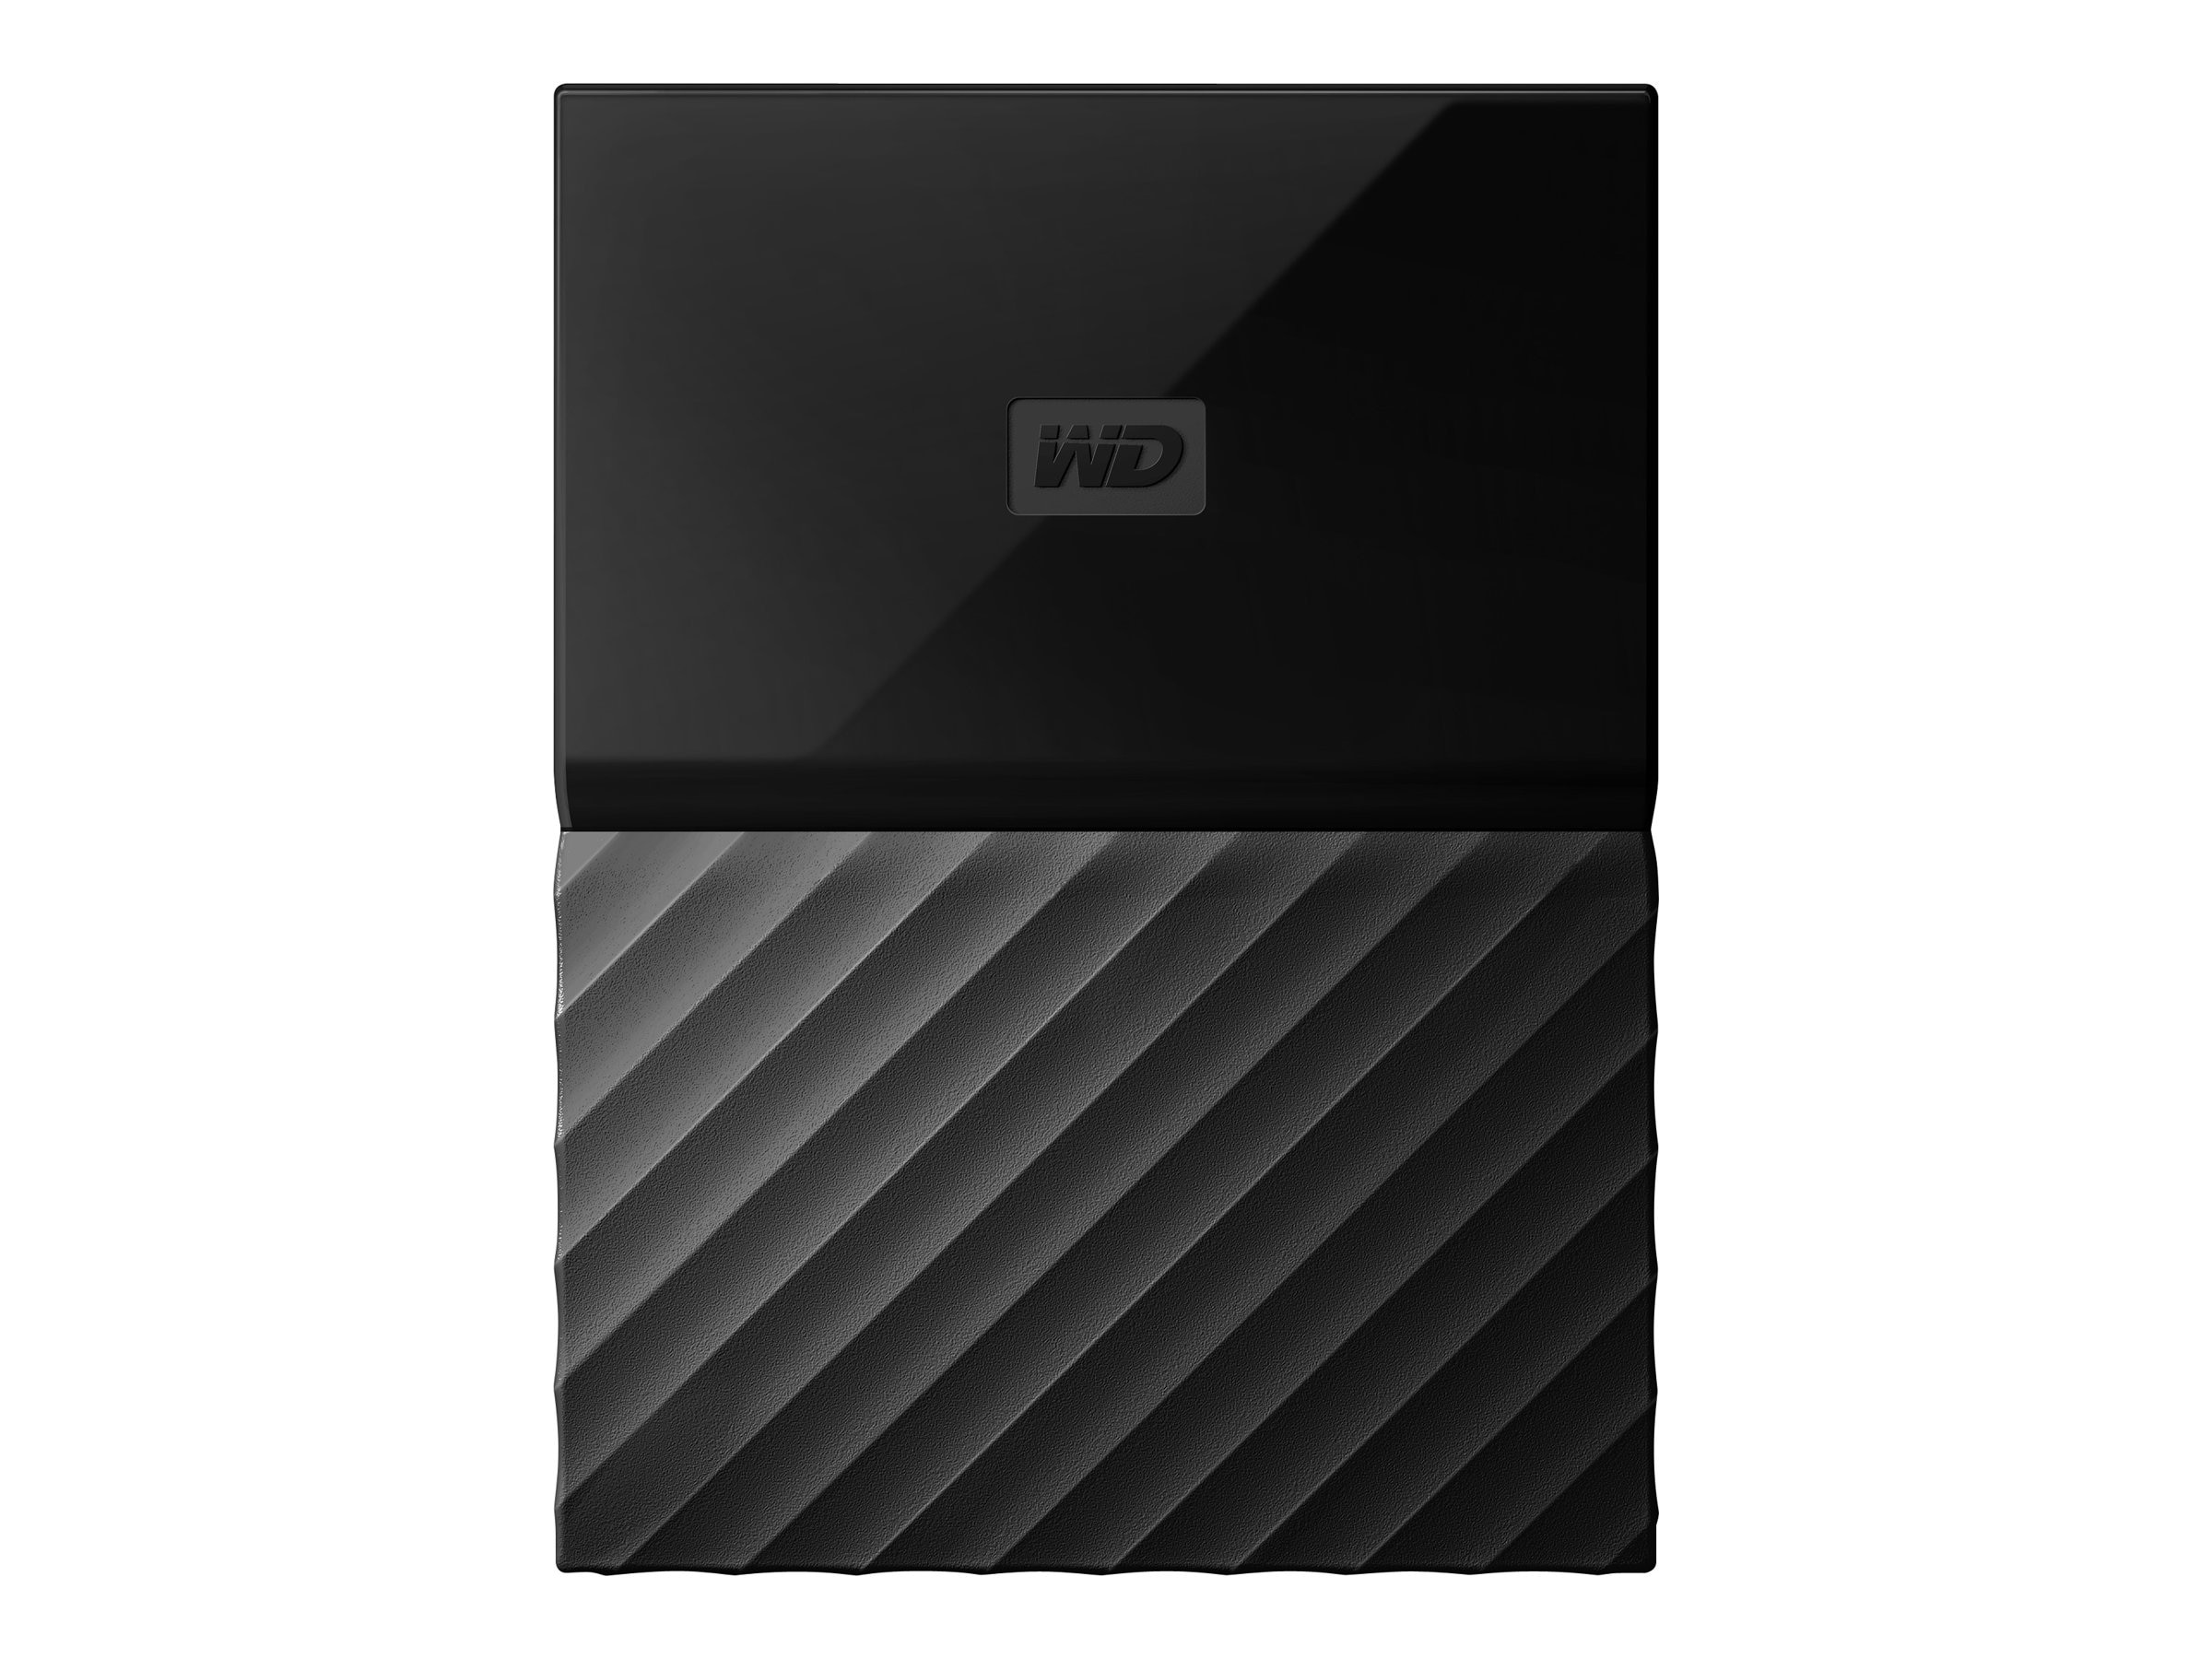 WD 3TB My Passport Ultra, Black, WDBYFT0030BBK-WESN